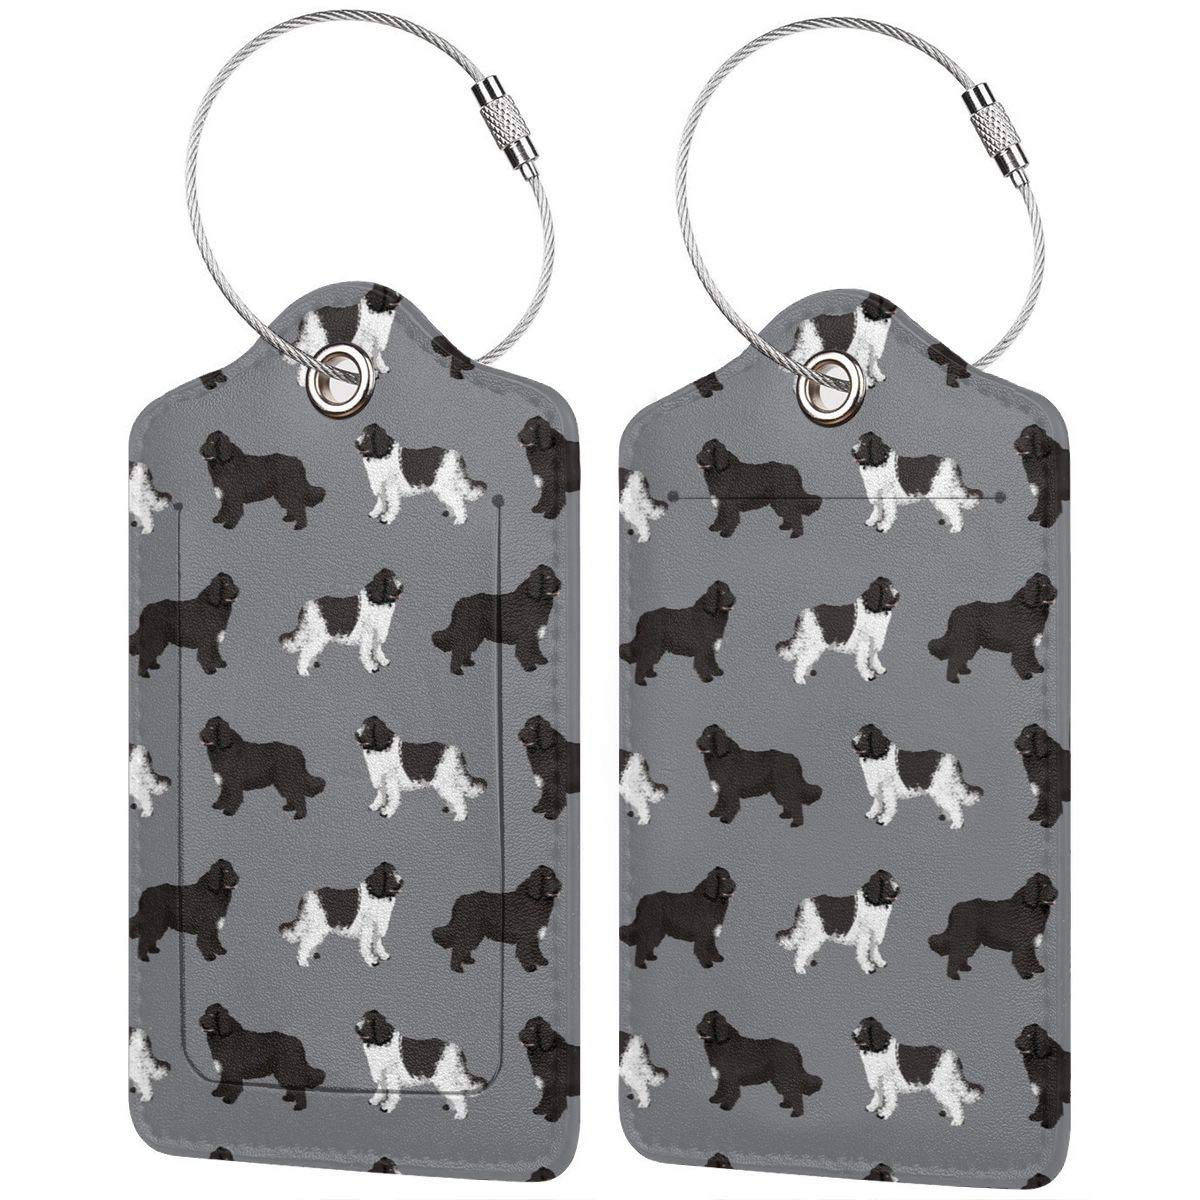 Leather Luggage Tags Full Privacy Cover and Stainless Steel Loop 1 2 4 Pcs Set Key Tags for Backpacks Travel Bags Gift Newfie Dog 2.7 x 4.6 Blank Tag